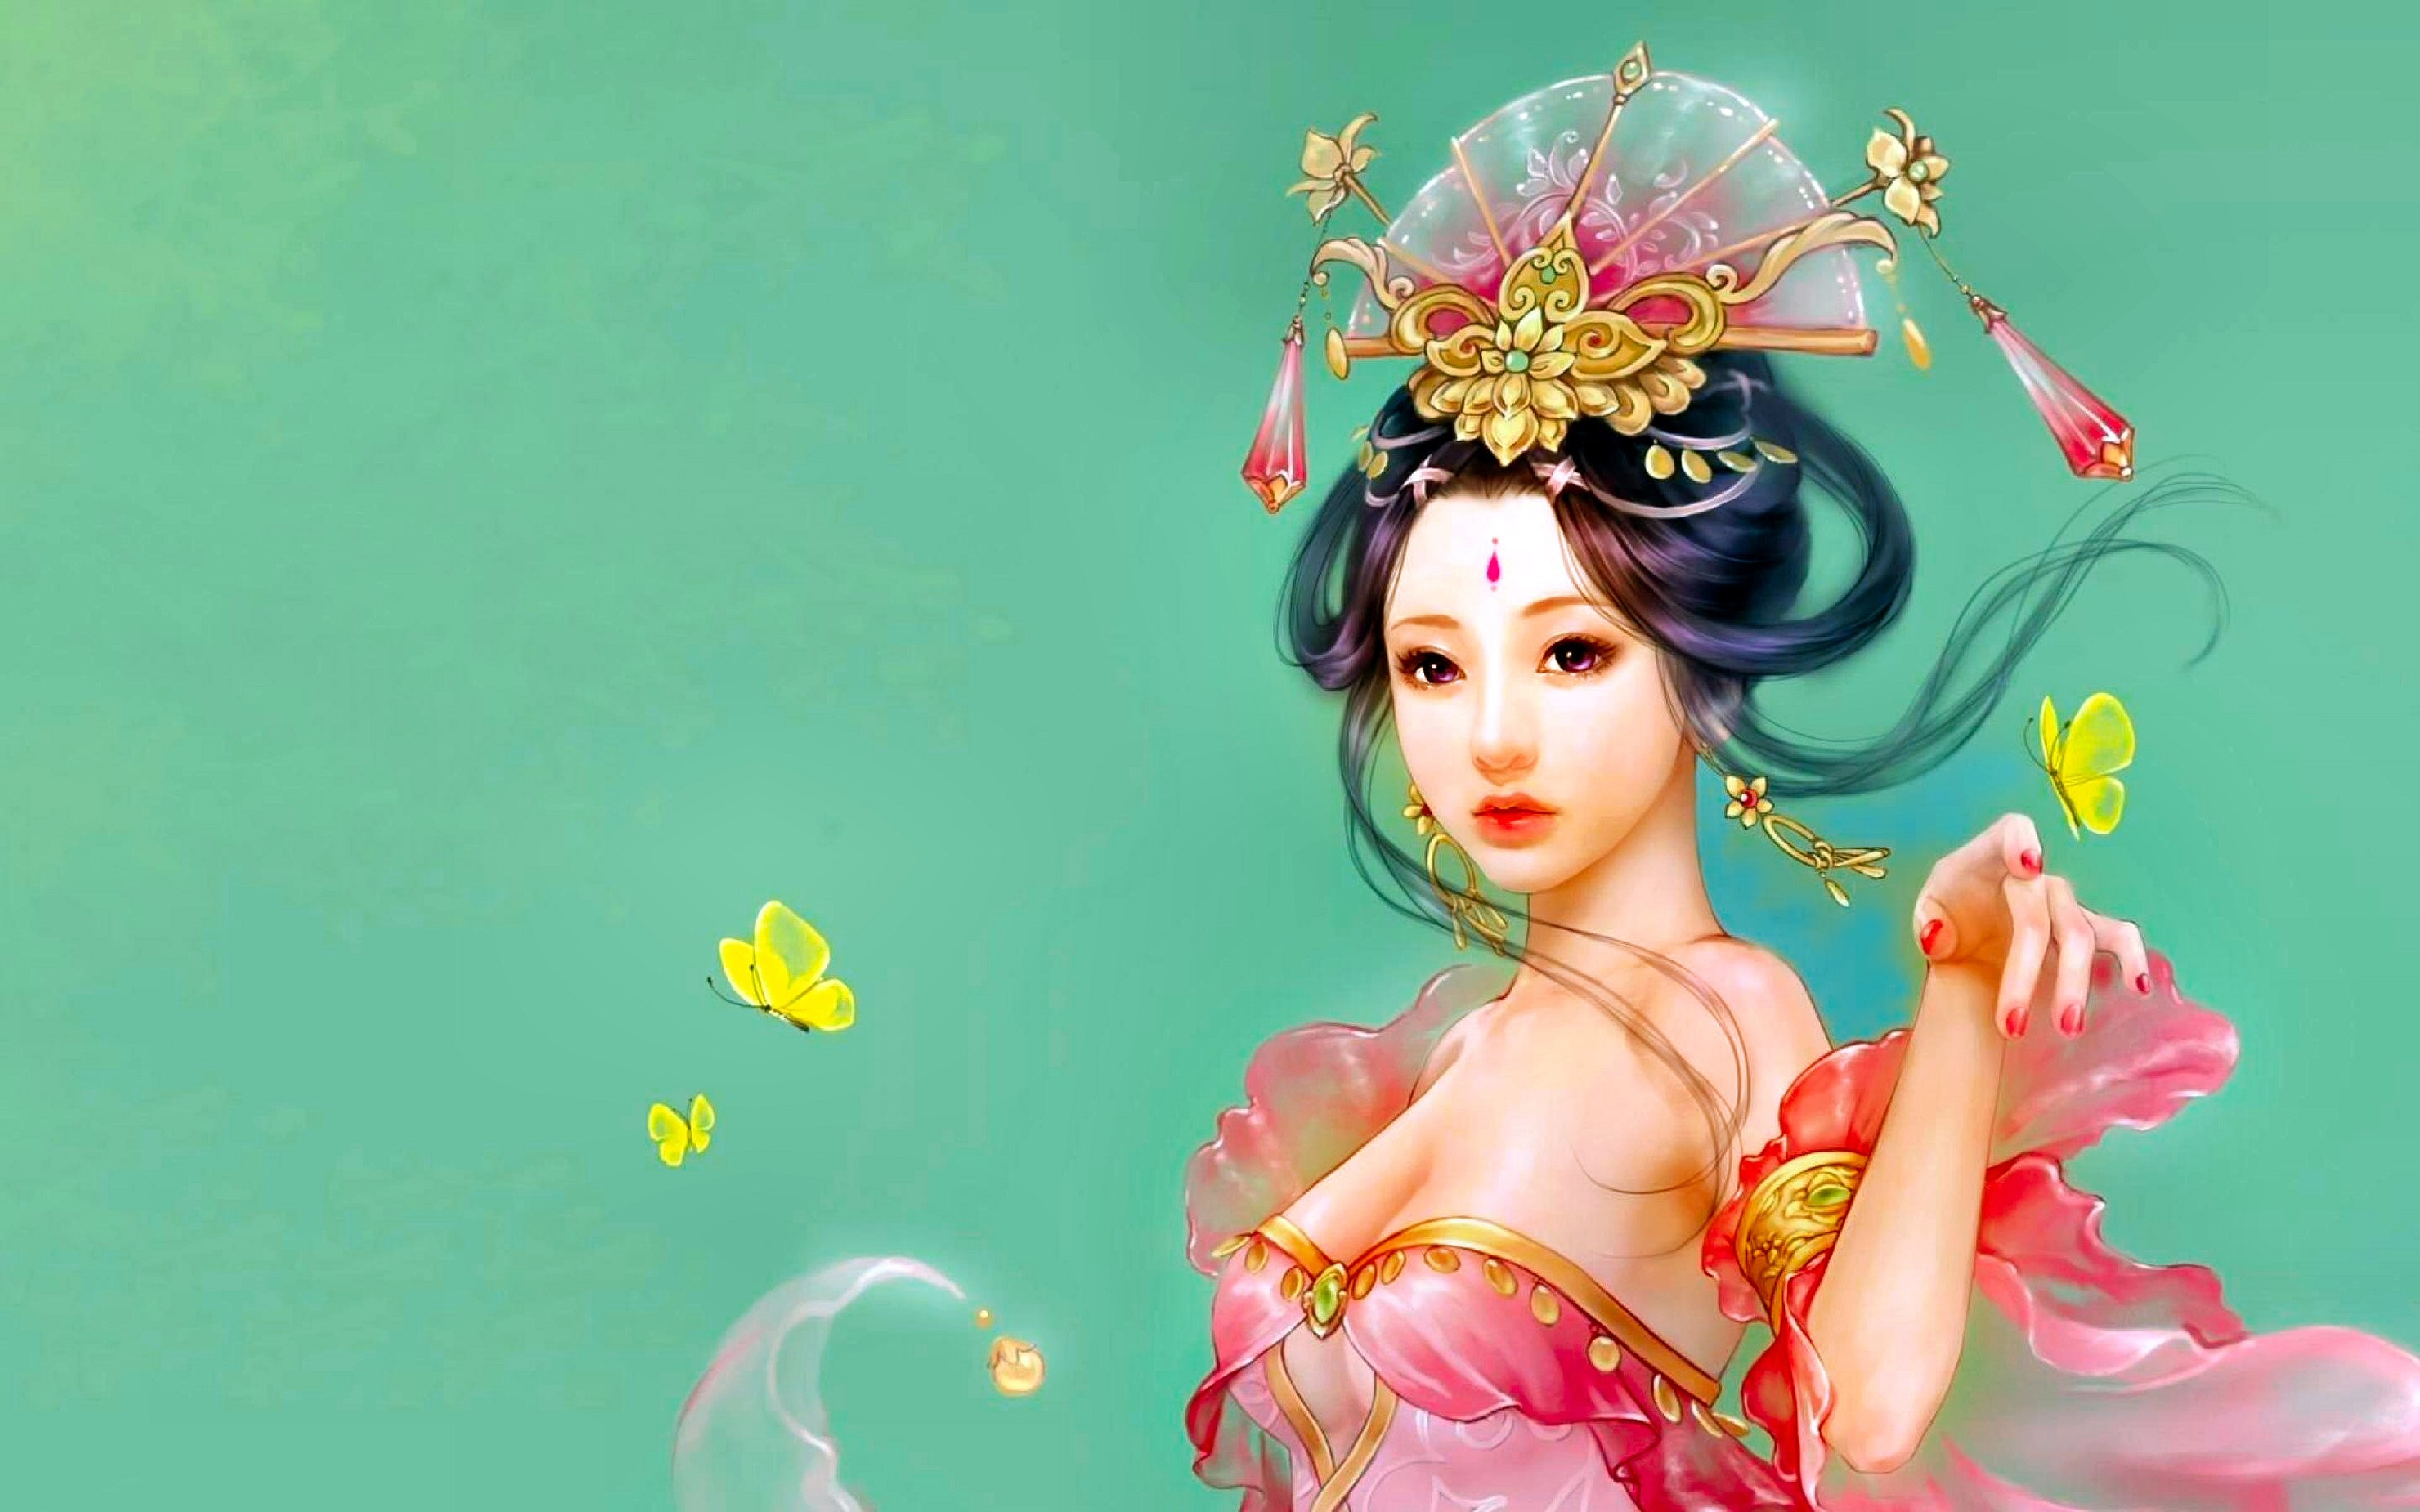 Res: 2960x1850, HD Wallpaper | Background Image ID:334299.  Fantasy Oriental